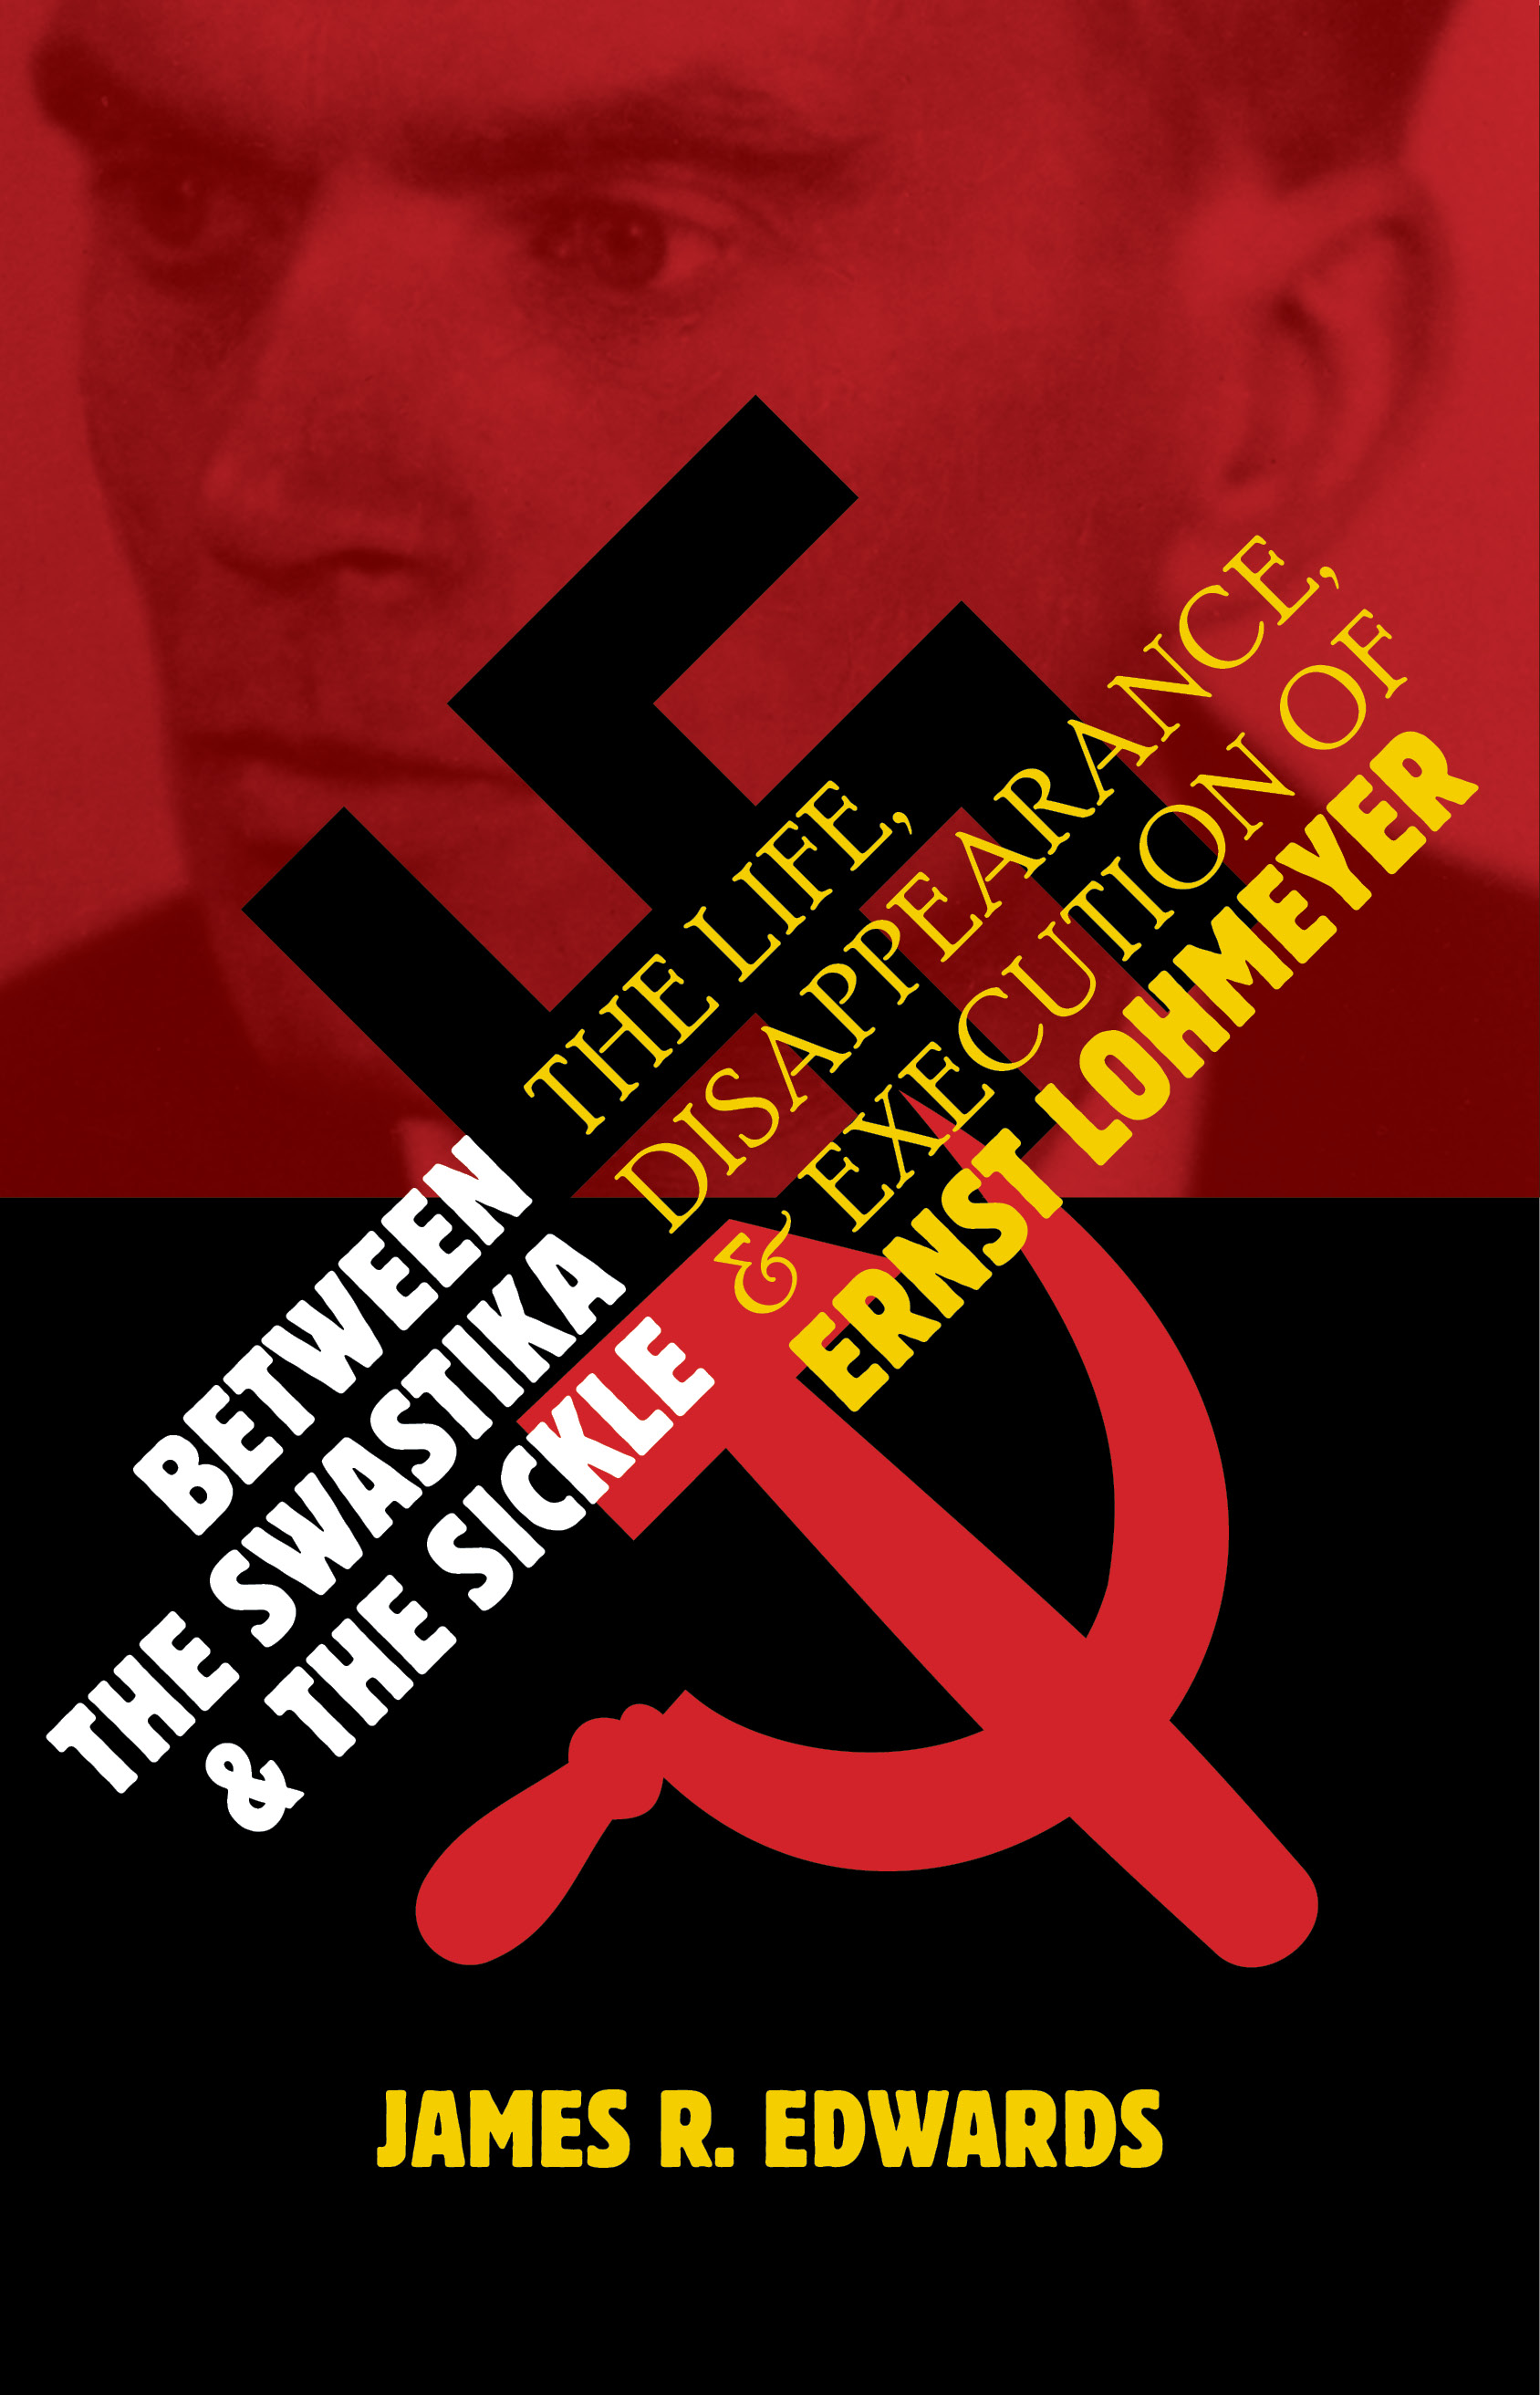 Book Review: James Edwards, Between the Swastika and the Sickle: The Life, Disappearance, and Execution of Ernst Lohmeyer